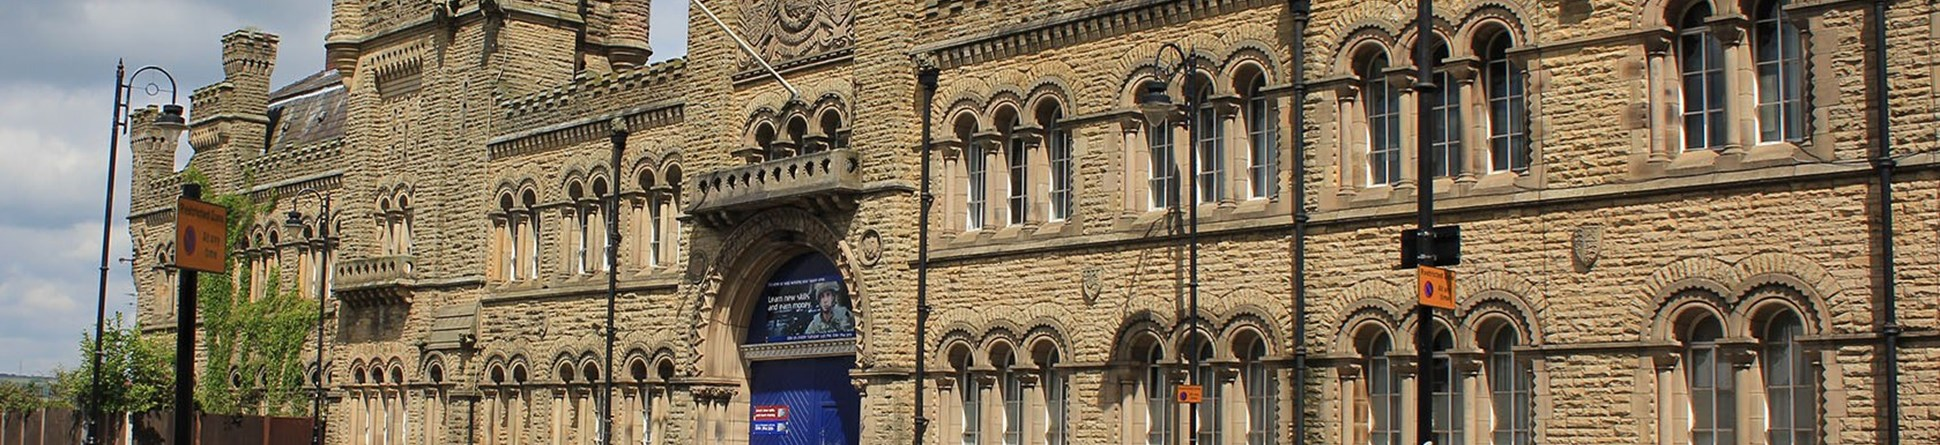 Bury, Castle Street, Drill Hall, 1868, its impressive stone–faced, gothic style frontage with crenulations was designed by Henry Styan and James Farrier, it is Grade II listed.